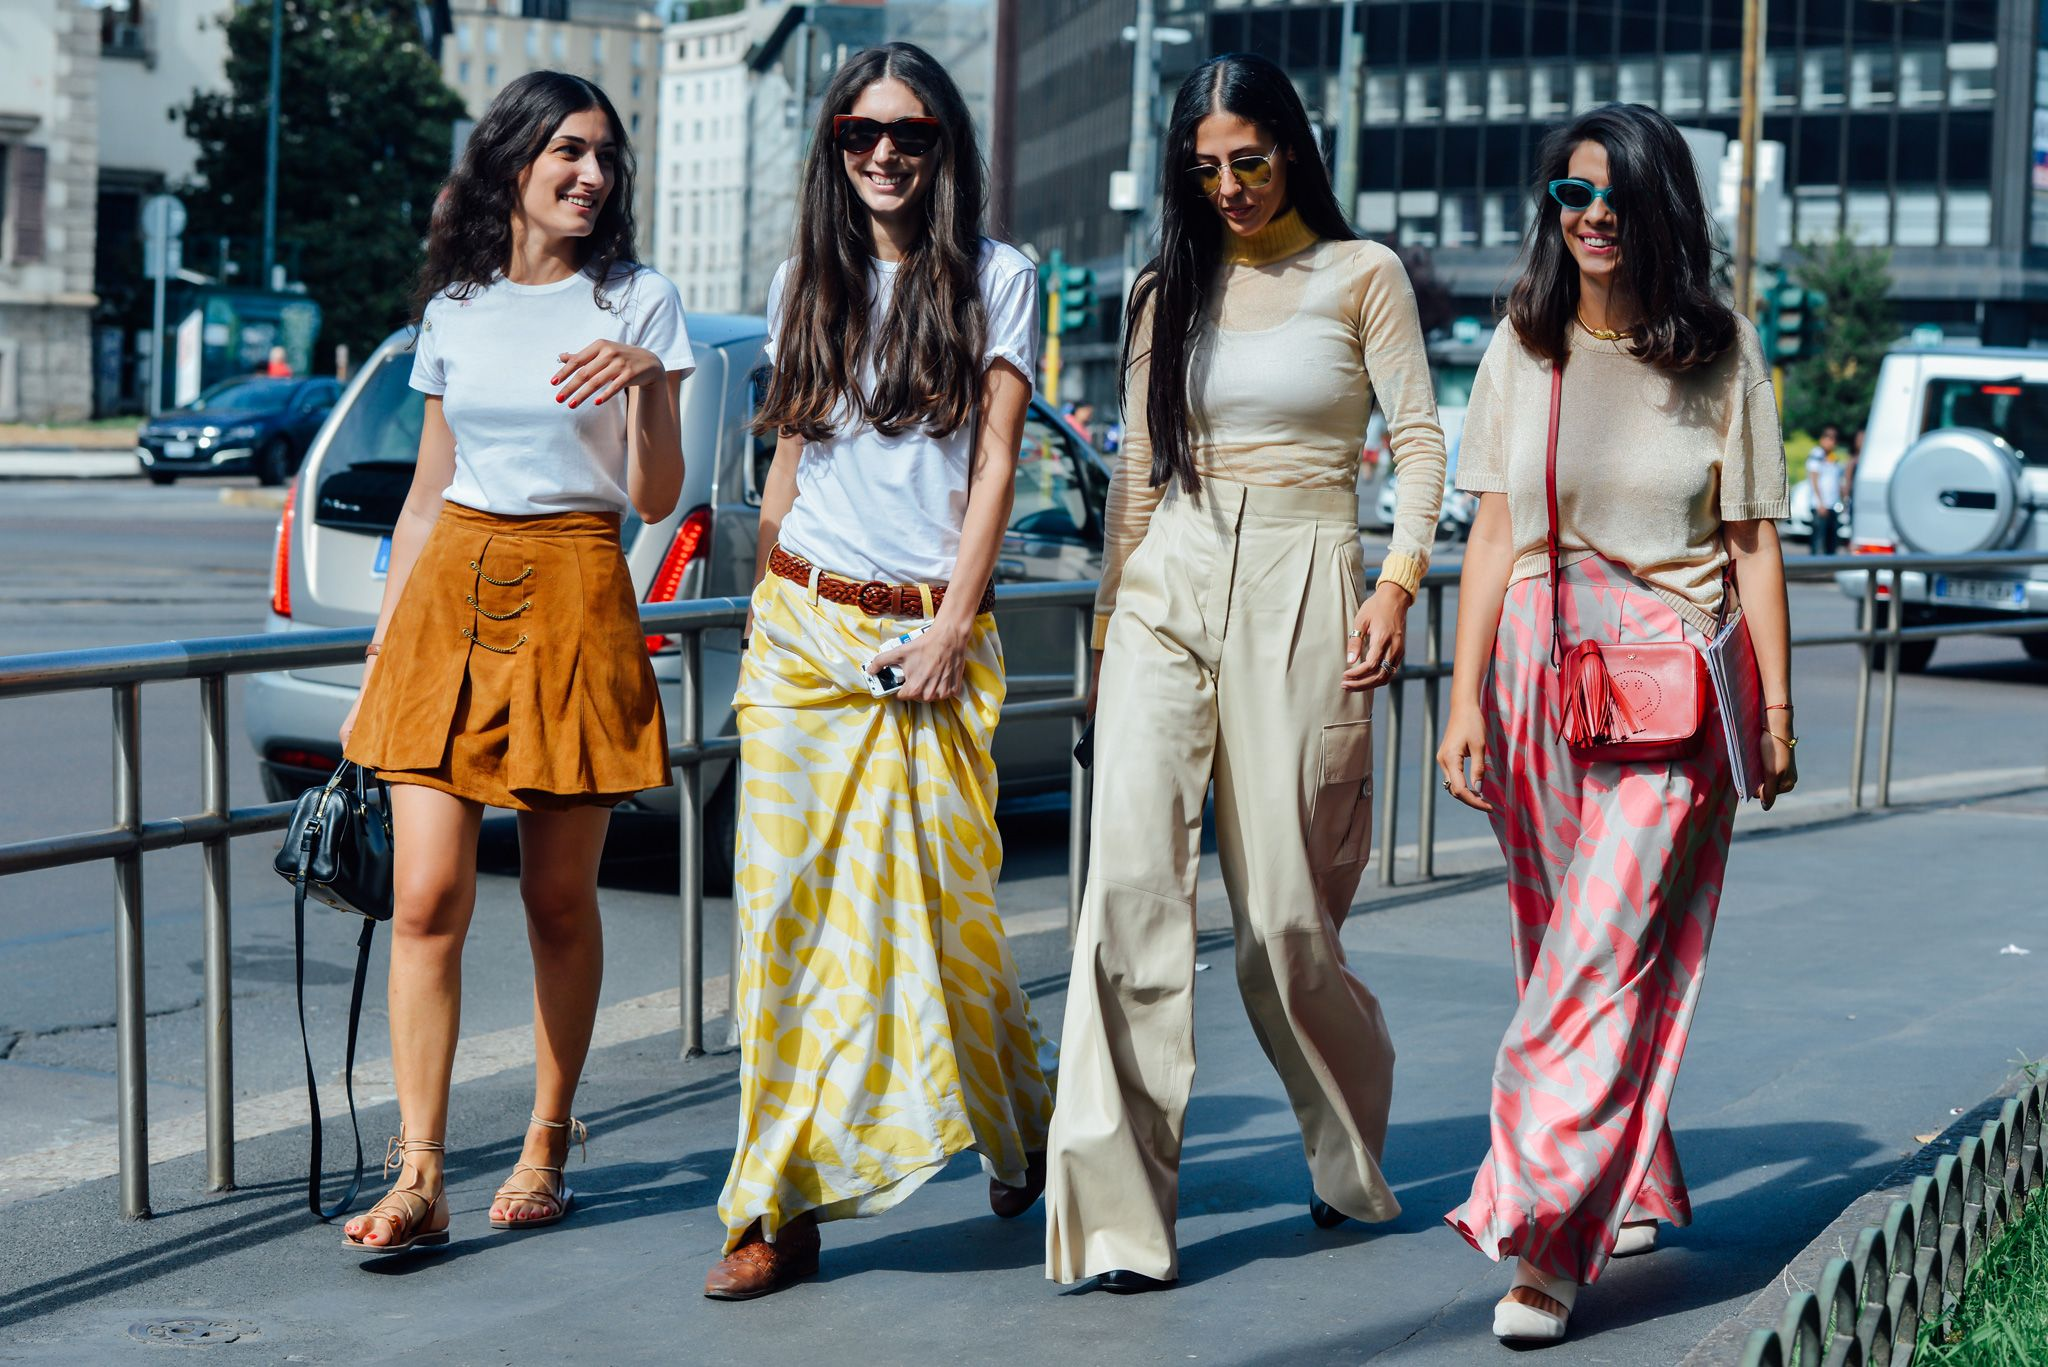 Italian Clothing Store Can Be Turned into Cash! Here Is How?